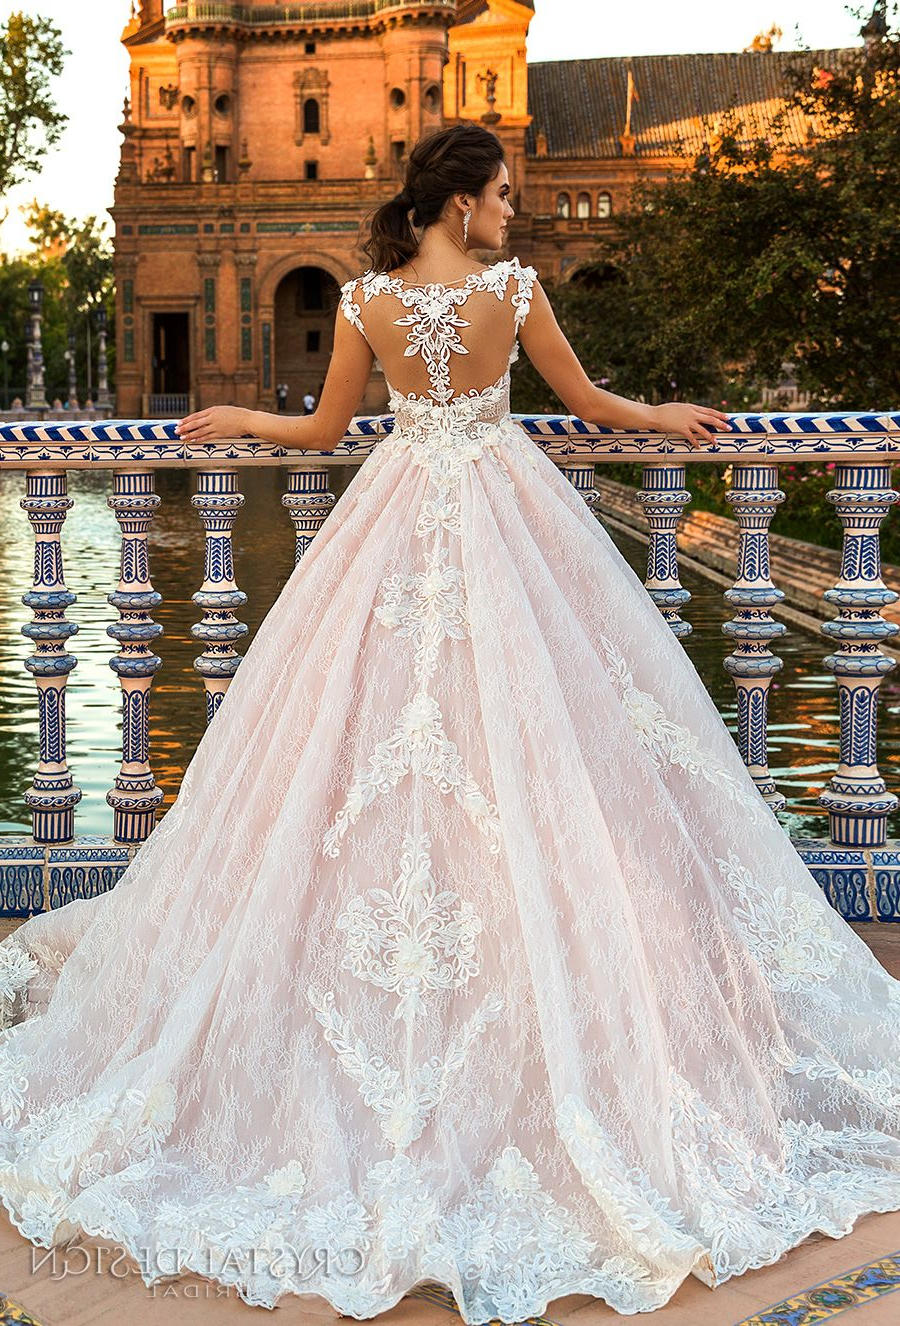 Trendy Sleek And Big Princess Ball Gown Updos For Brides Inside Beautiful Wedding Dresses From The 2017 Crystal Design Collection (View 13 of 20)